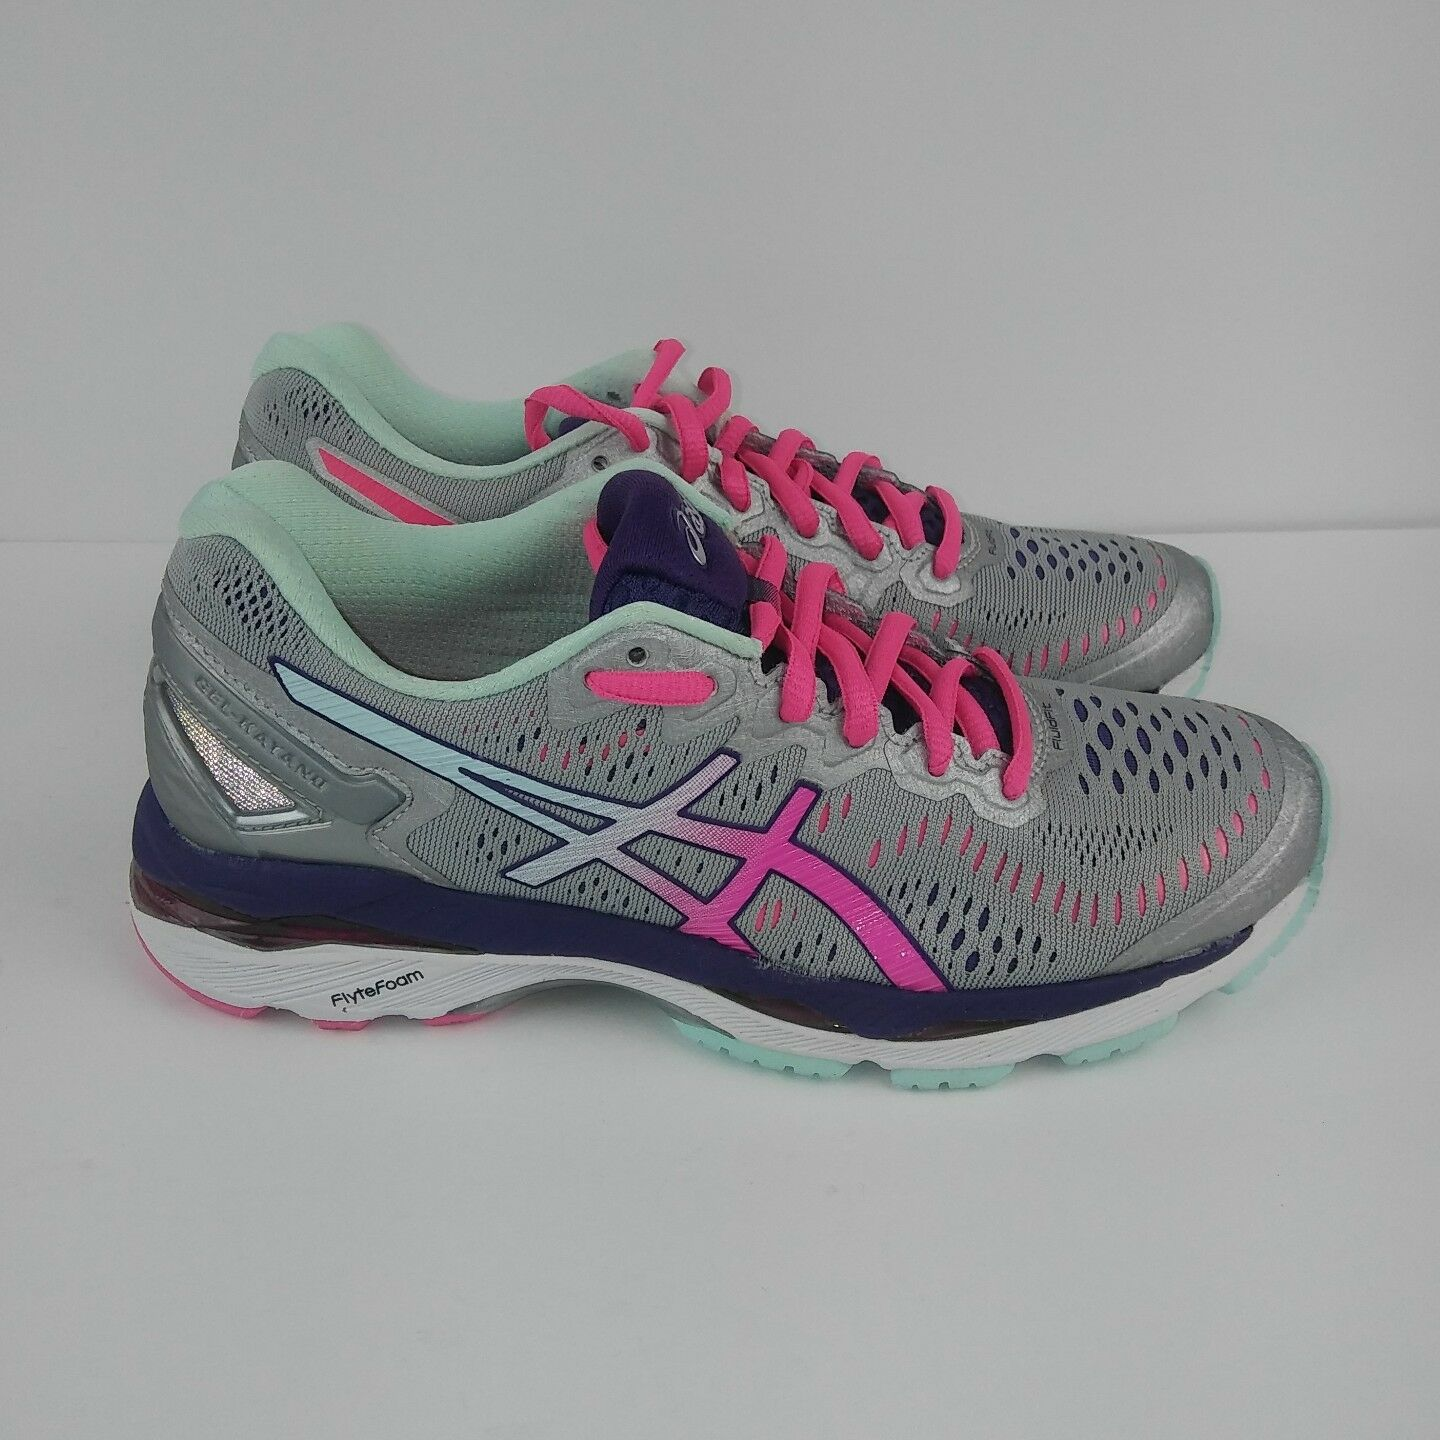 ASICS Gel Kayano 23 Running Shoes Multi-Color Women's Comfortable Cheap women's shoes women's shoes